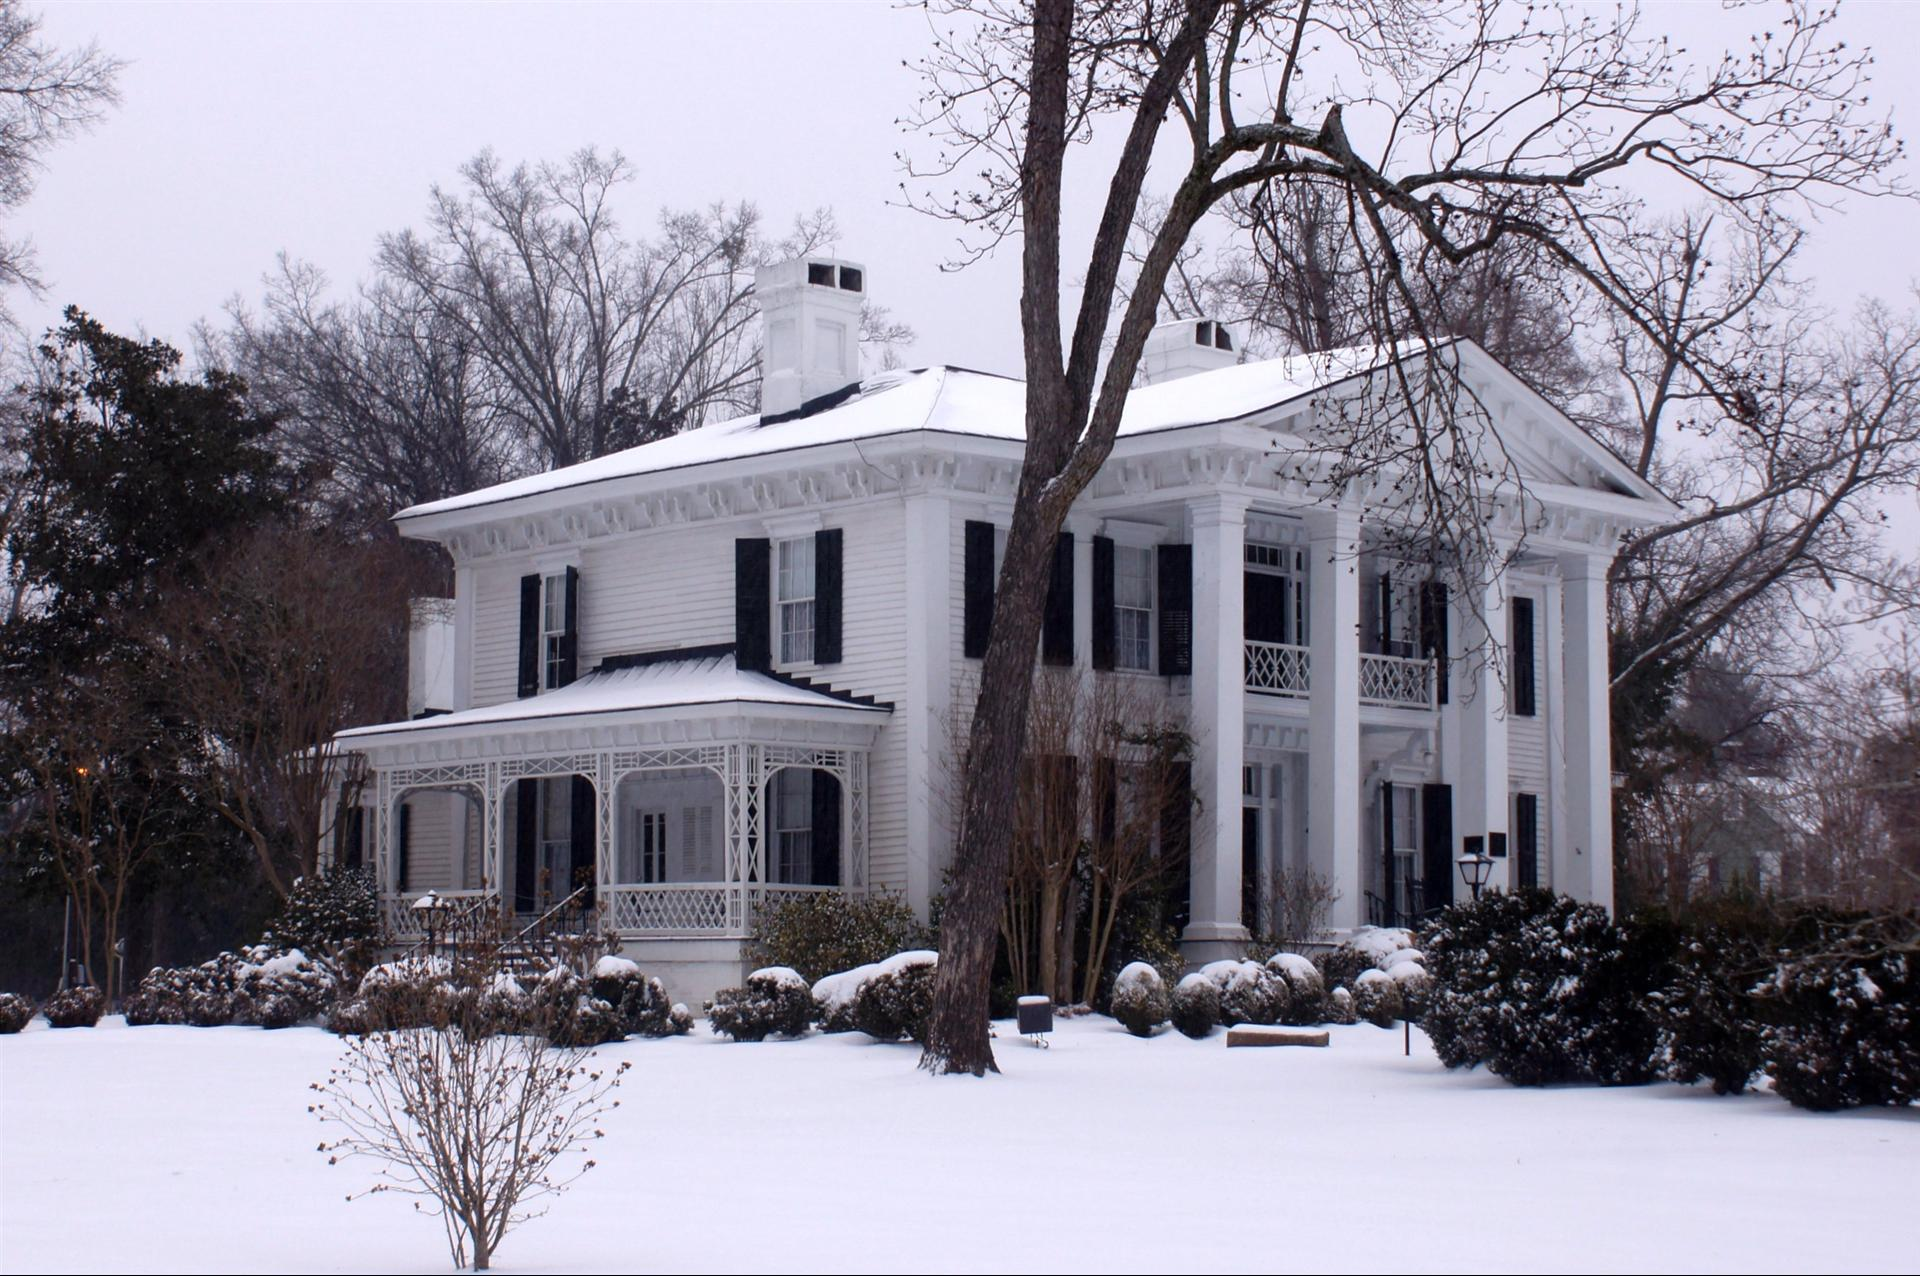 Burk Stark Mansion in winter